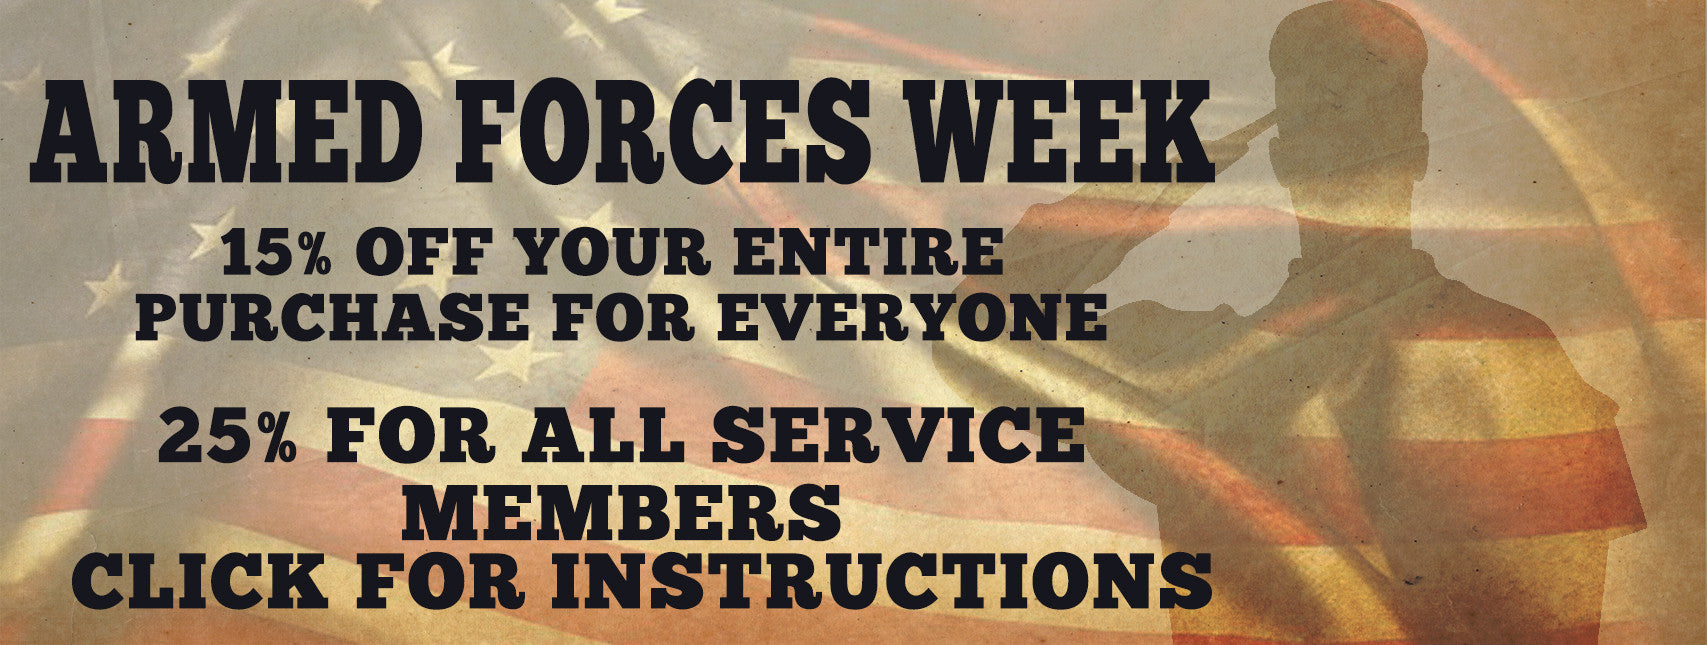 armed forces week sale